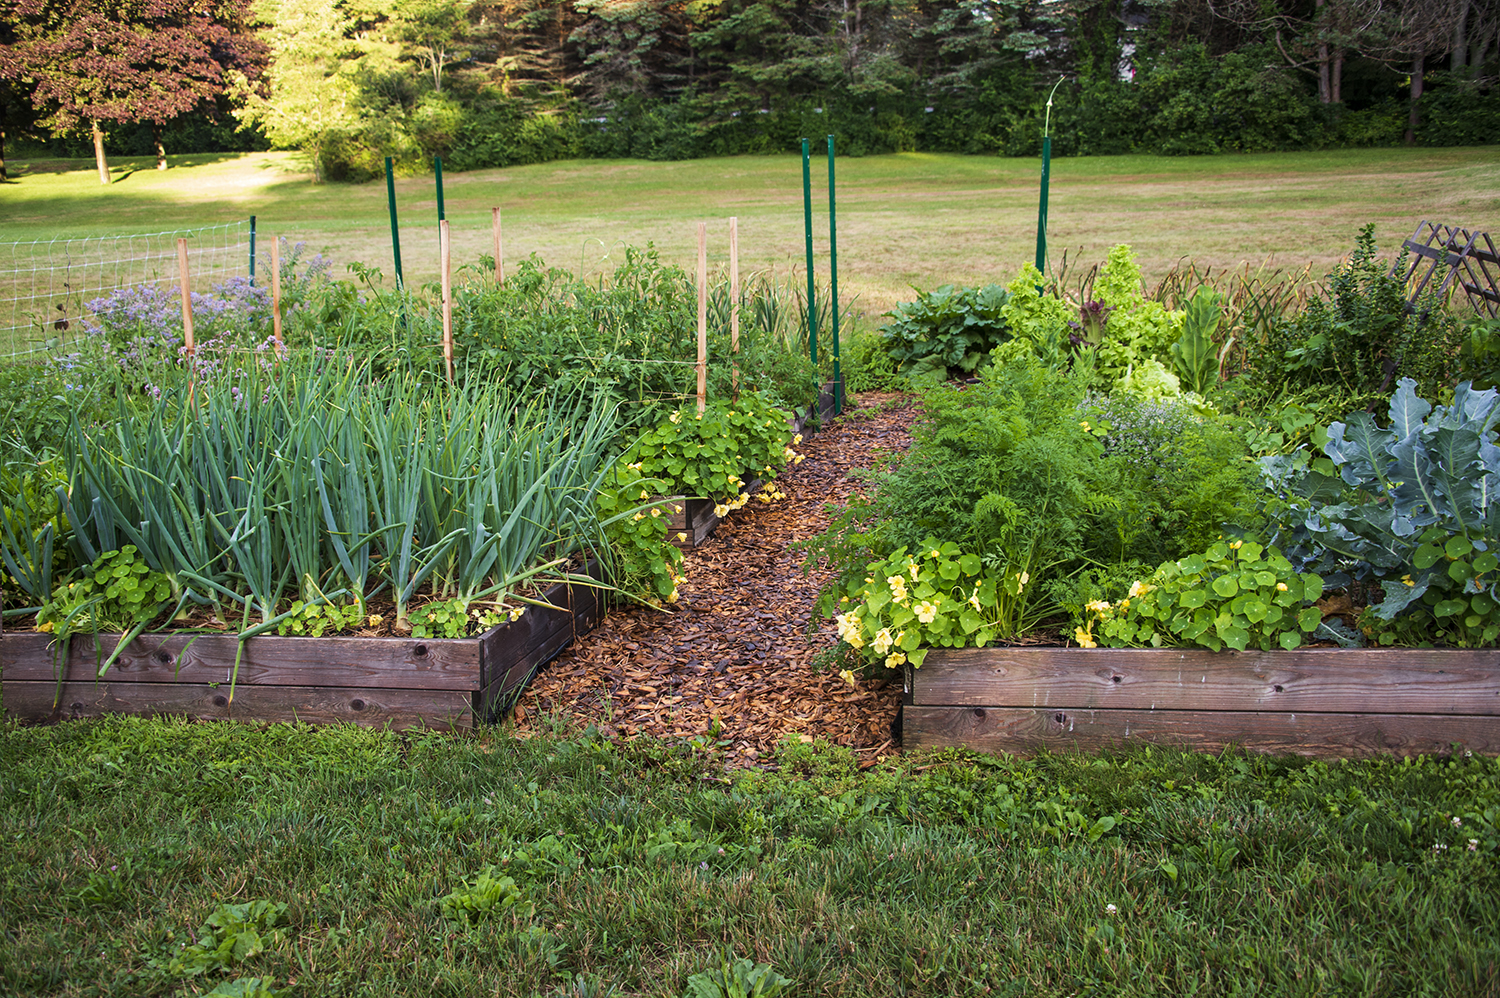 Garden planning | Kelly Orzel